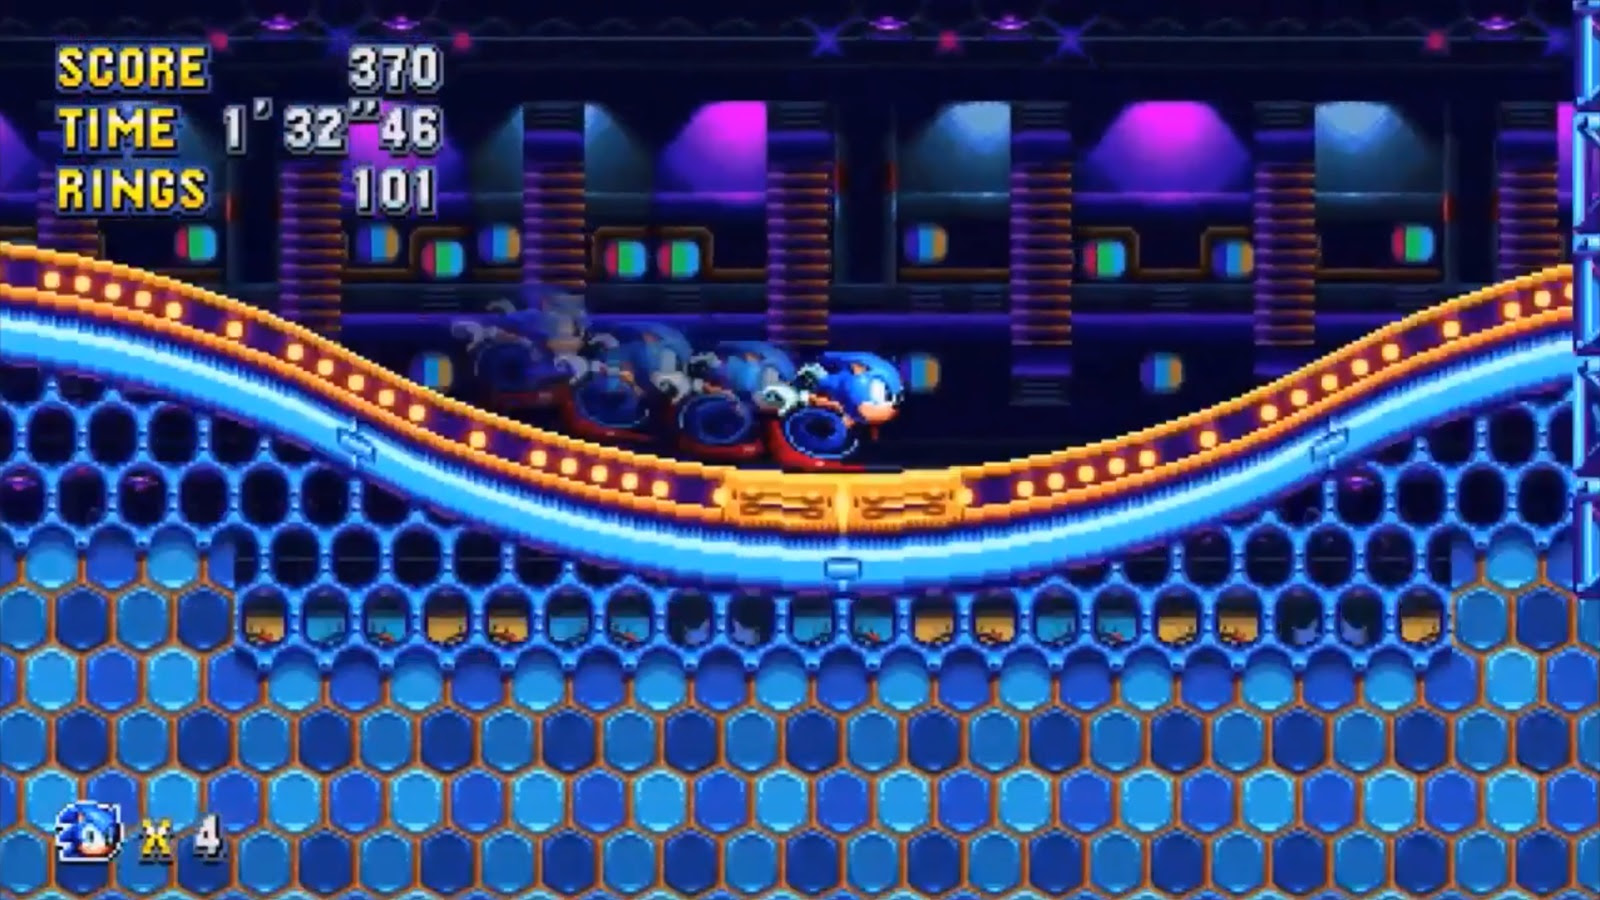 Sonic Mania has a not so nostalgic price screenshot